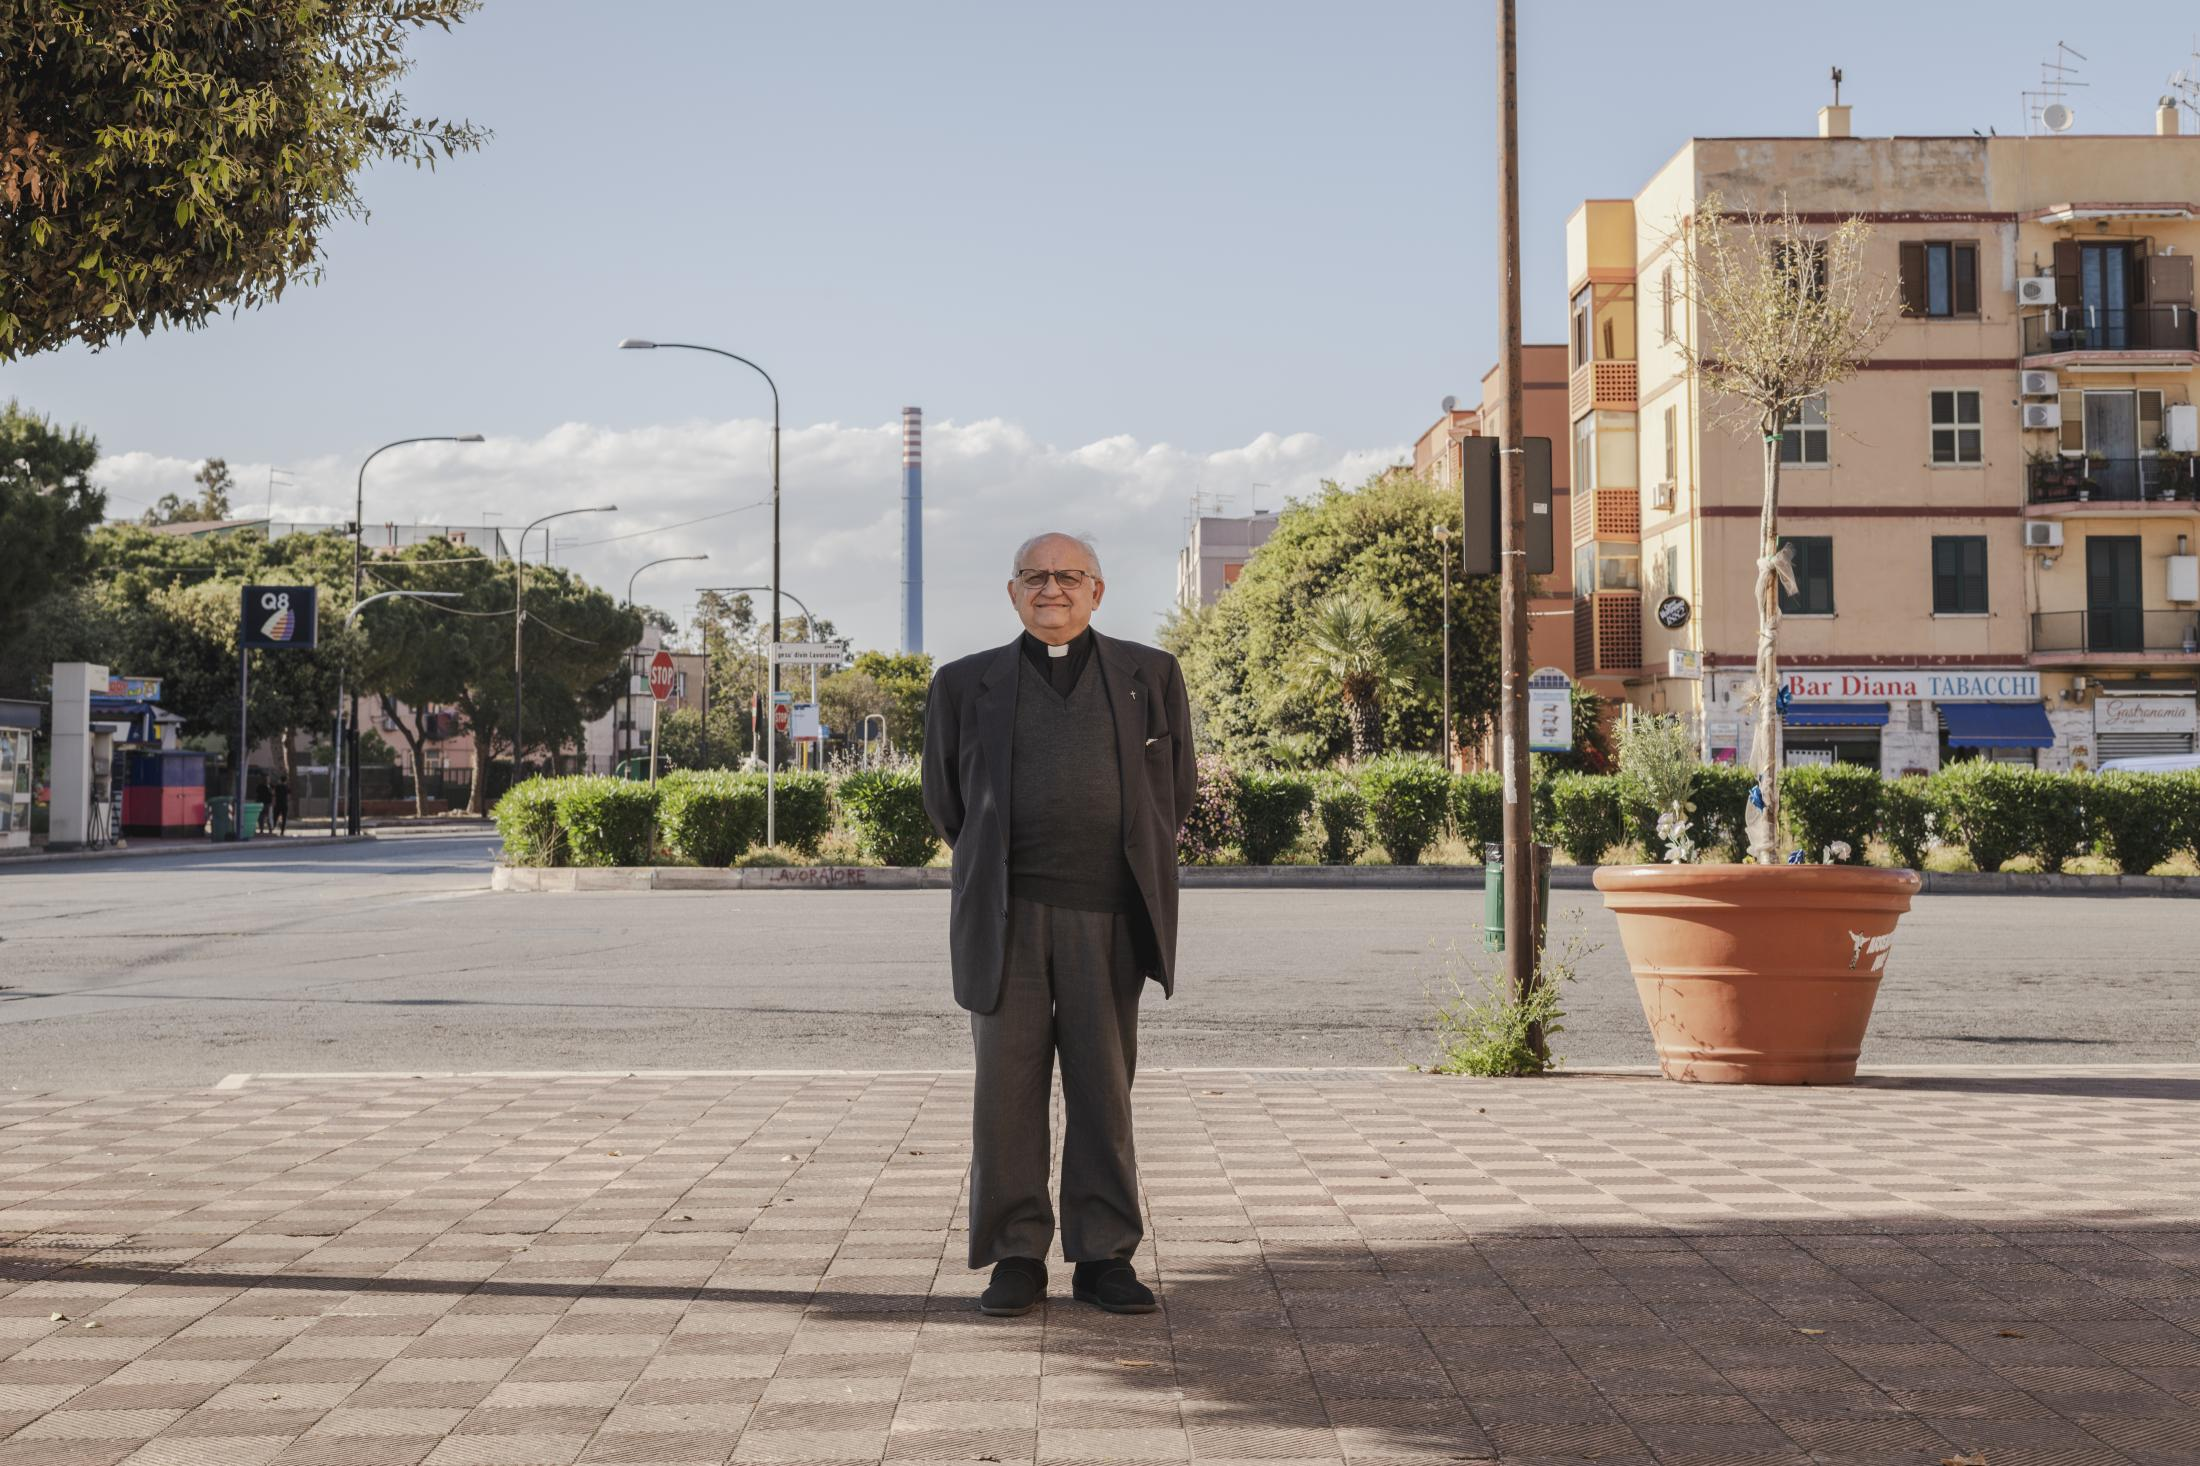 """– Father Nicola Preziuso (71). Father Nicola Preziuso is a pastor in the Tamburi district and has also been spiritually following for 40 years the workers of the former Ilva company, inside the factory. """"I am not a chaplain, anyway. It is a service that I give for free together with my congregation: that of the Josephites of Murialdo, whose mission is precisely about the vocation to work"""". About how the district lived the contagion, he says: """"I had to fight to overcome clericalism because many said that it was God who sent the Coronavirus. I constantly remembered that the Lord gave us two lungs: one is faith; the other is the reason. People must use both"""". For two months, in the house next to the parsonage, the Josephites hosted in self-isolation three nurses who worked in the COVID hub of Taranto and were afraid of going back home and infect their families."""